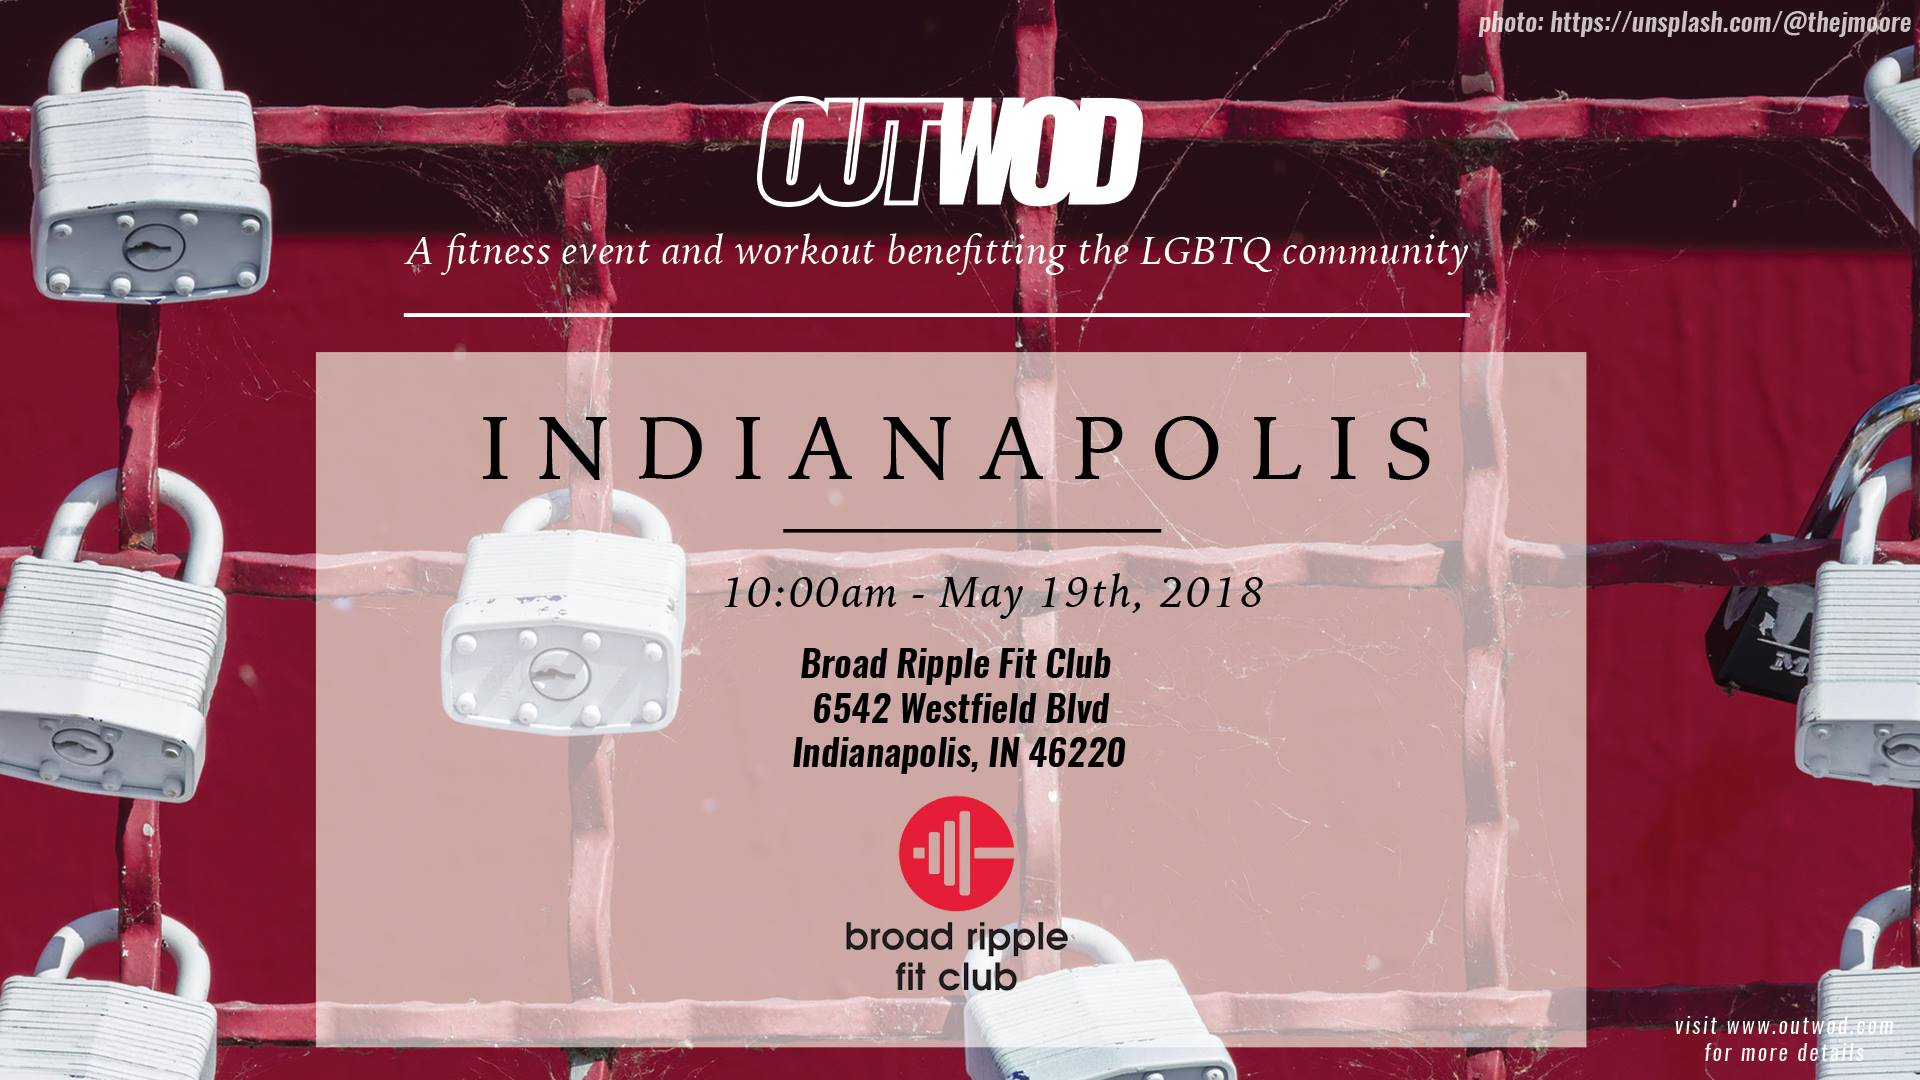 Saturday, May 19th: OUTWOD Event